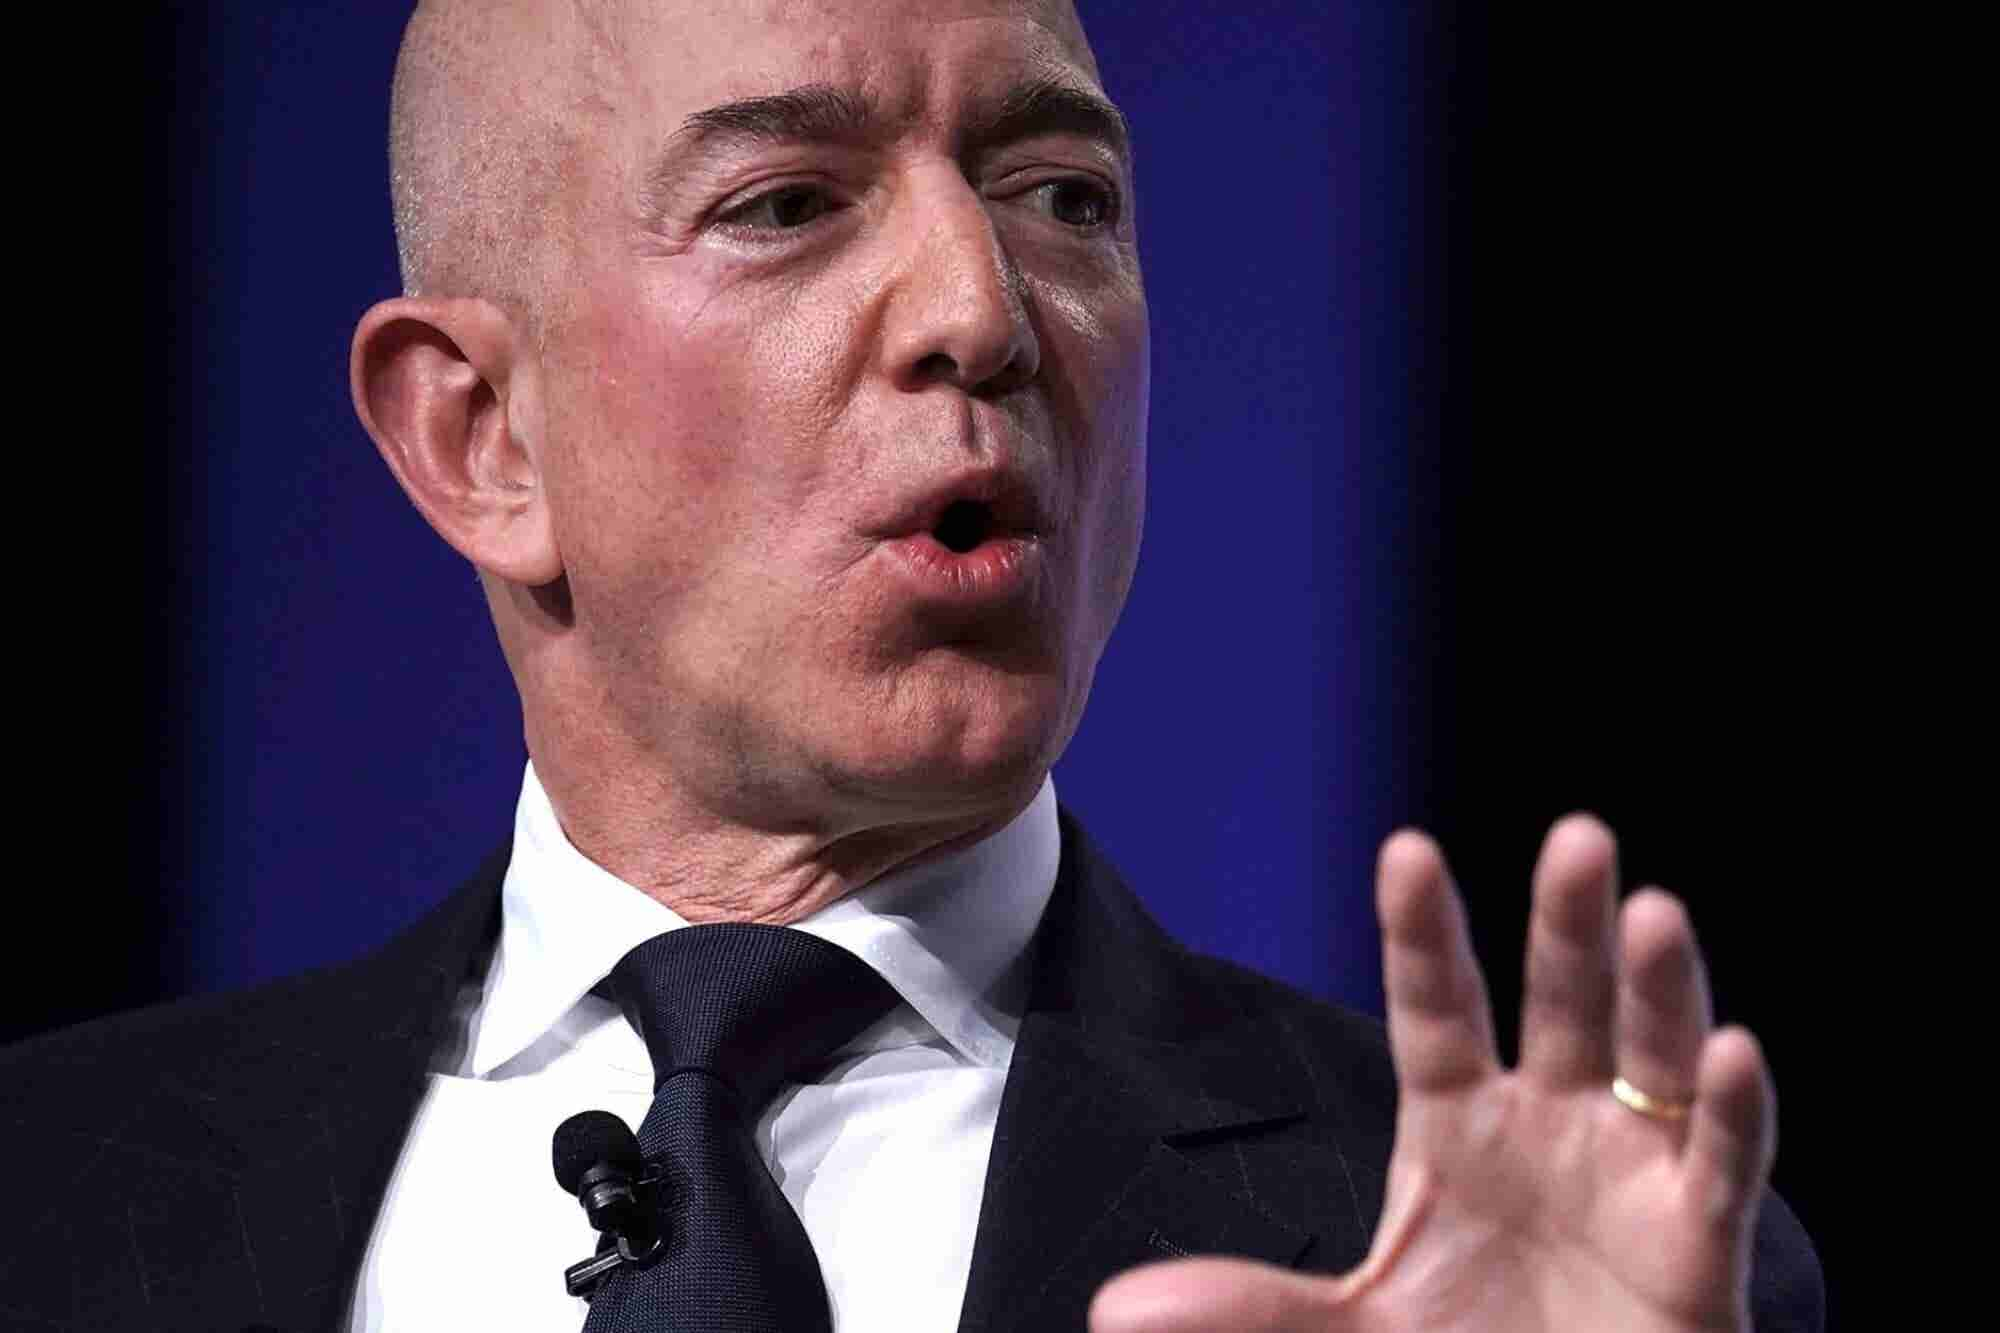 Amazon CEO Jeff Bezos Accuses 'National Enquirer' Publisher of 'Extortion' Over Naked Photos in Extraordinary Blog Post